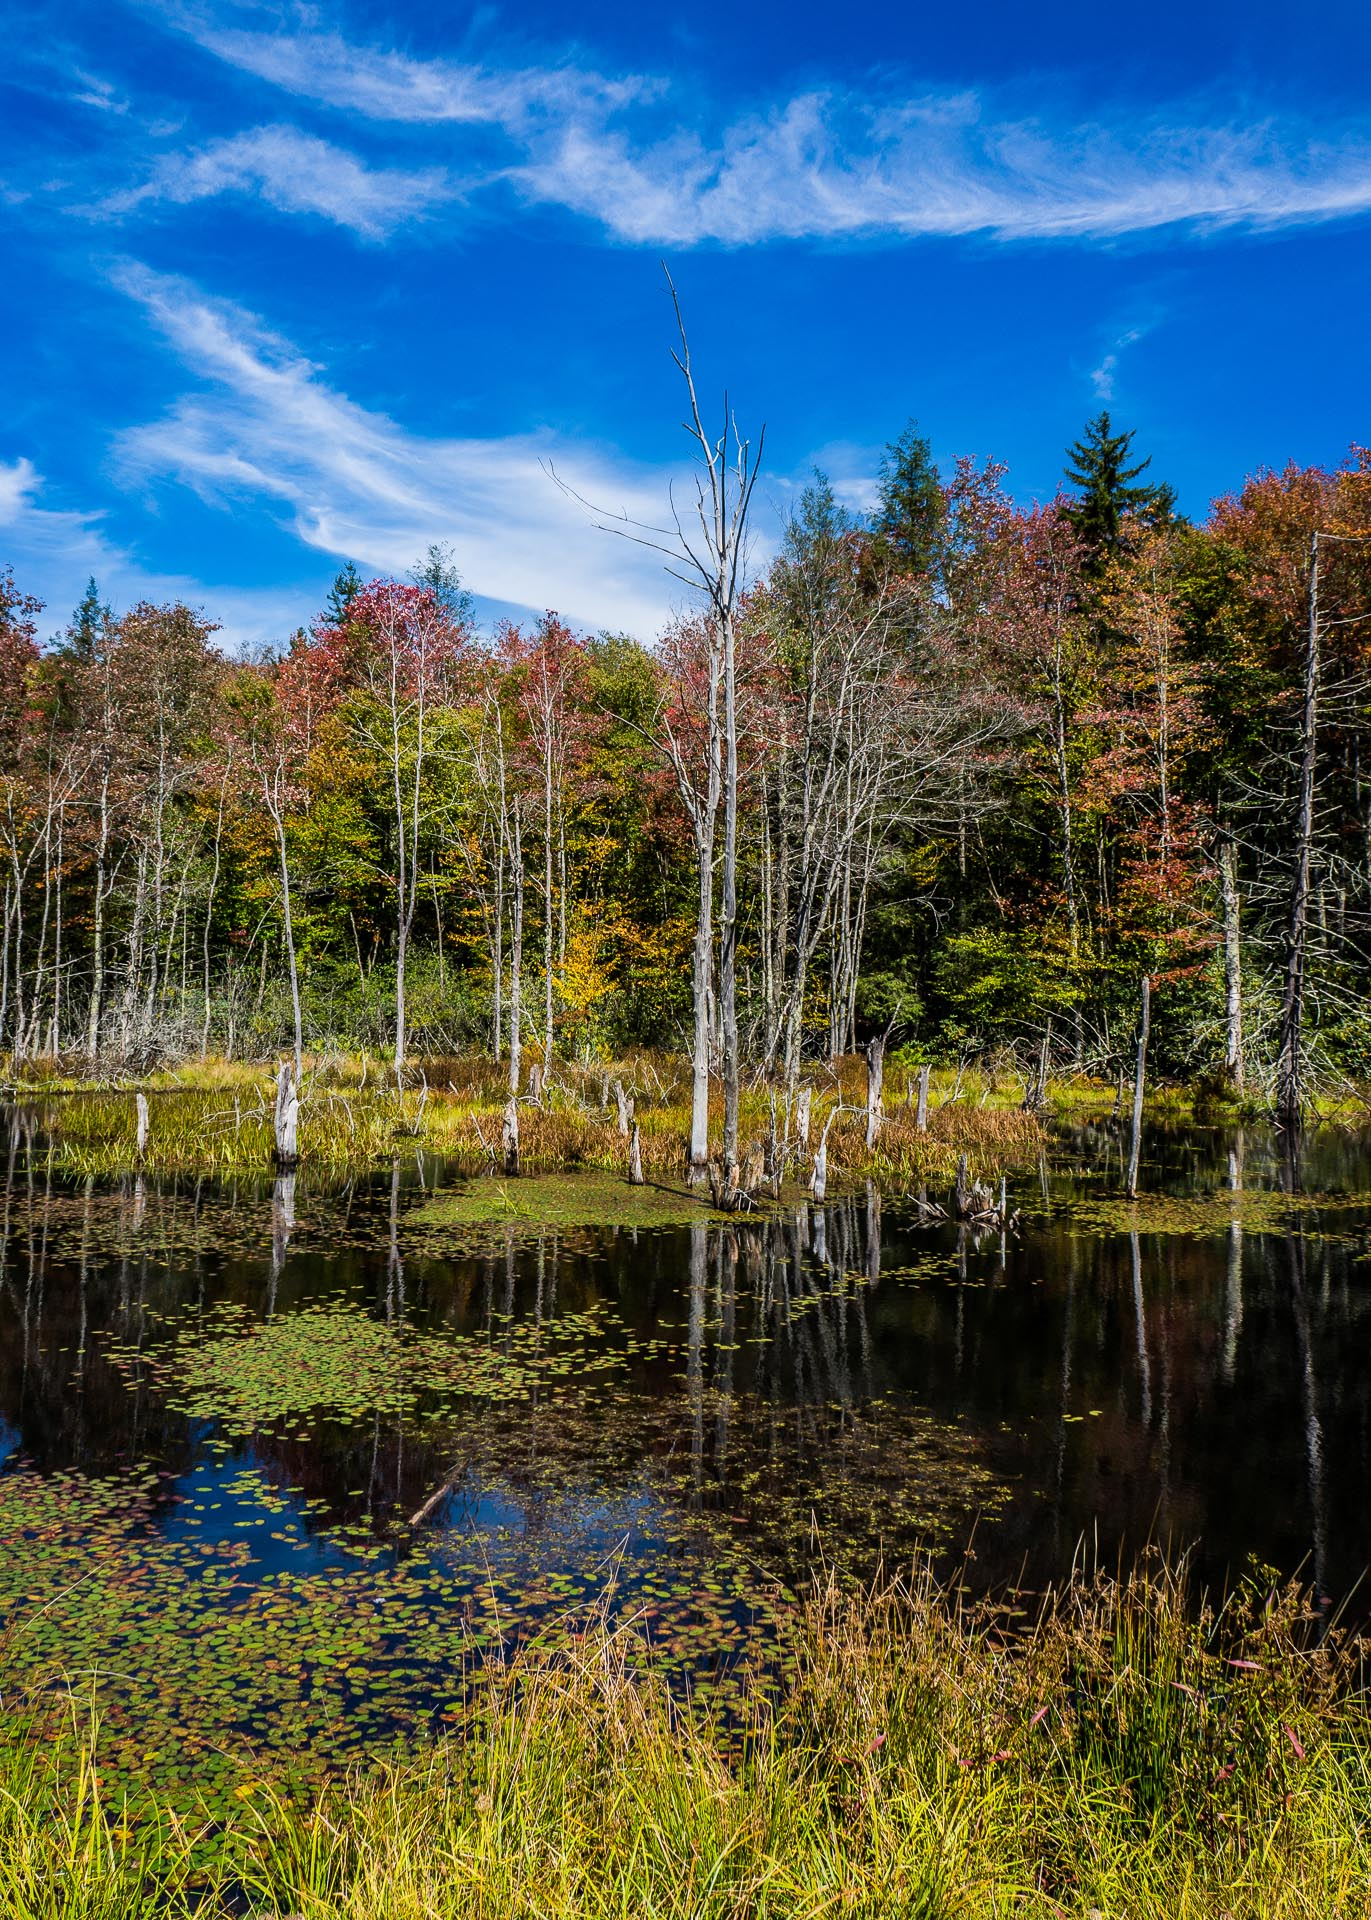 virginia picturesque and genteel We will write a cheap essay sample on an uprising in 1676 in the virginia colony in north america specifically for you virginia: picturesque and genteel.